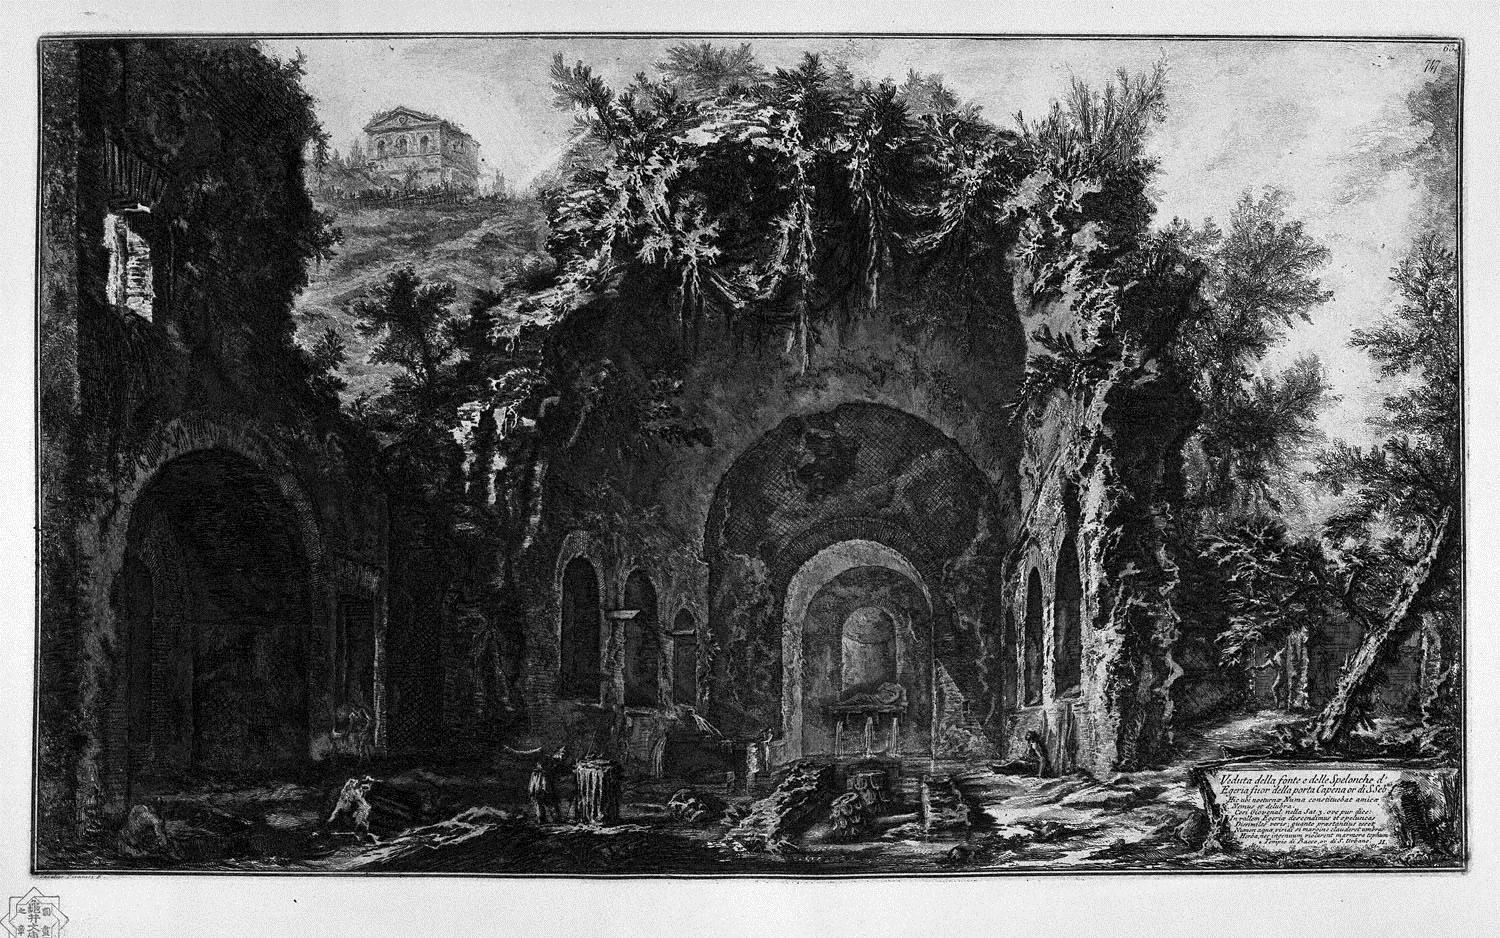 zz dp銅版画 Giovanni Battista Piranesi